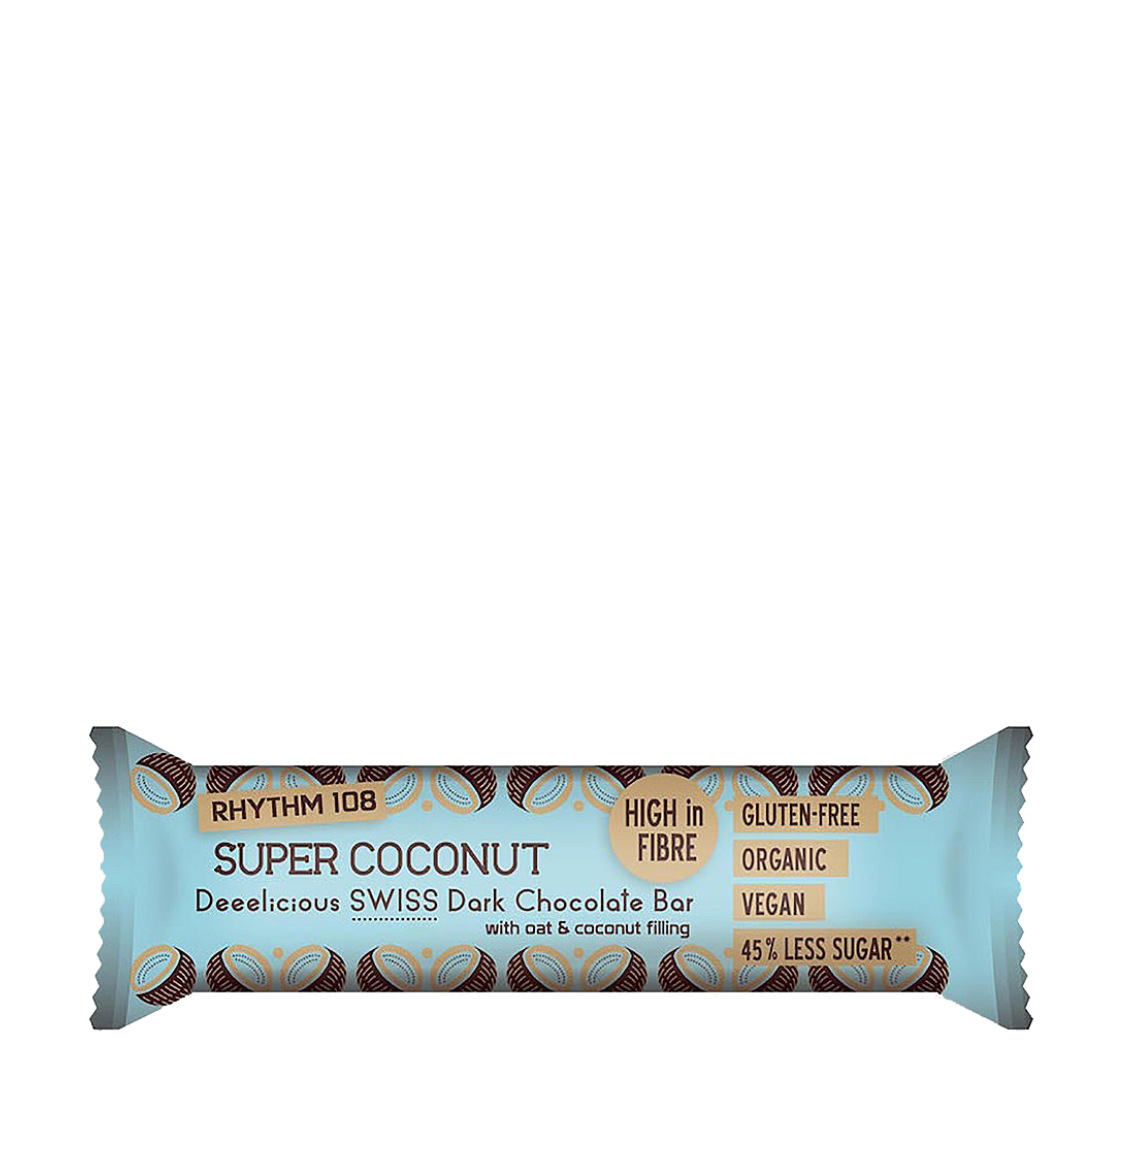 Rhythm 108 Swiss Dark Chocolate Coconut Bar 5 x 33g